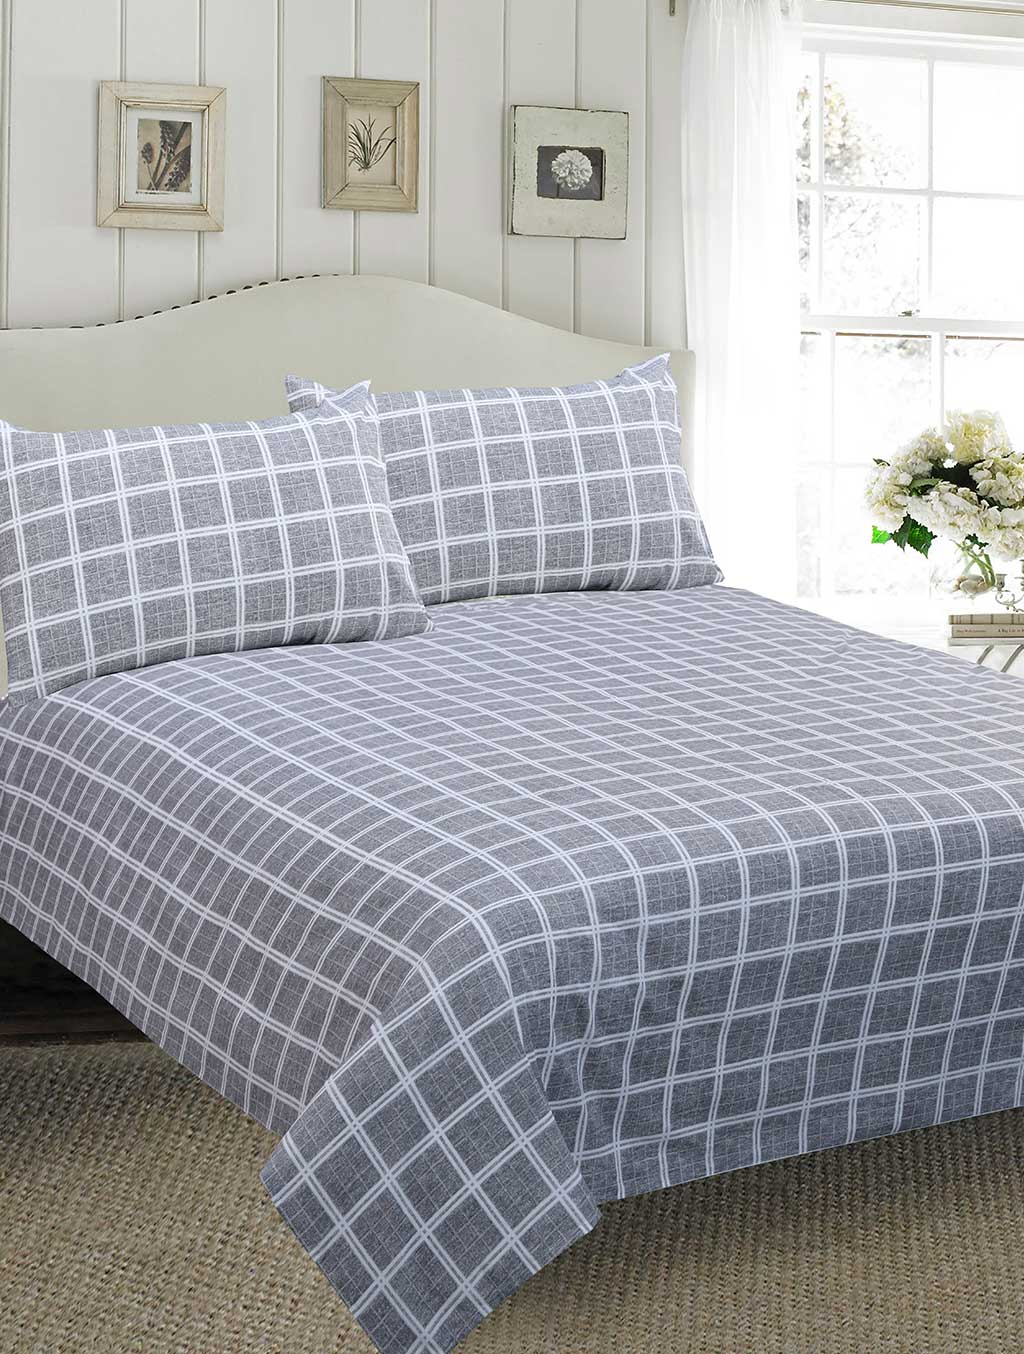 BED SHEET R2G 17451 Printed Range 144 TC HOMBEDROO